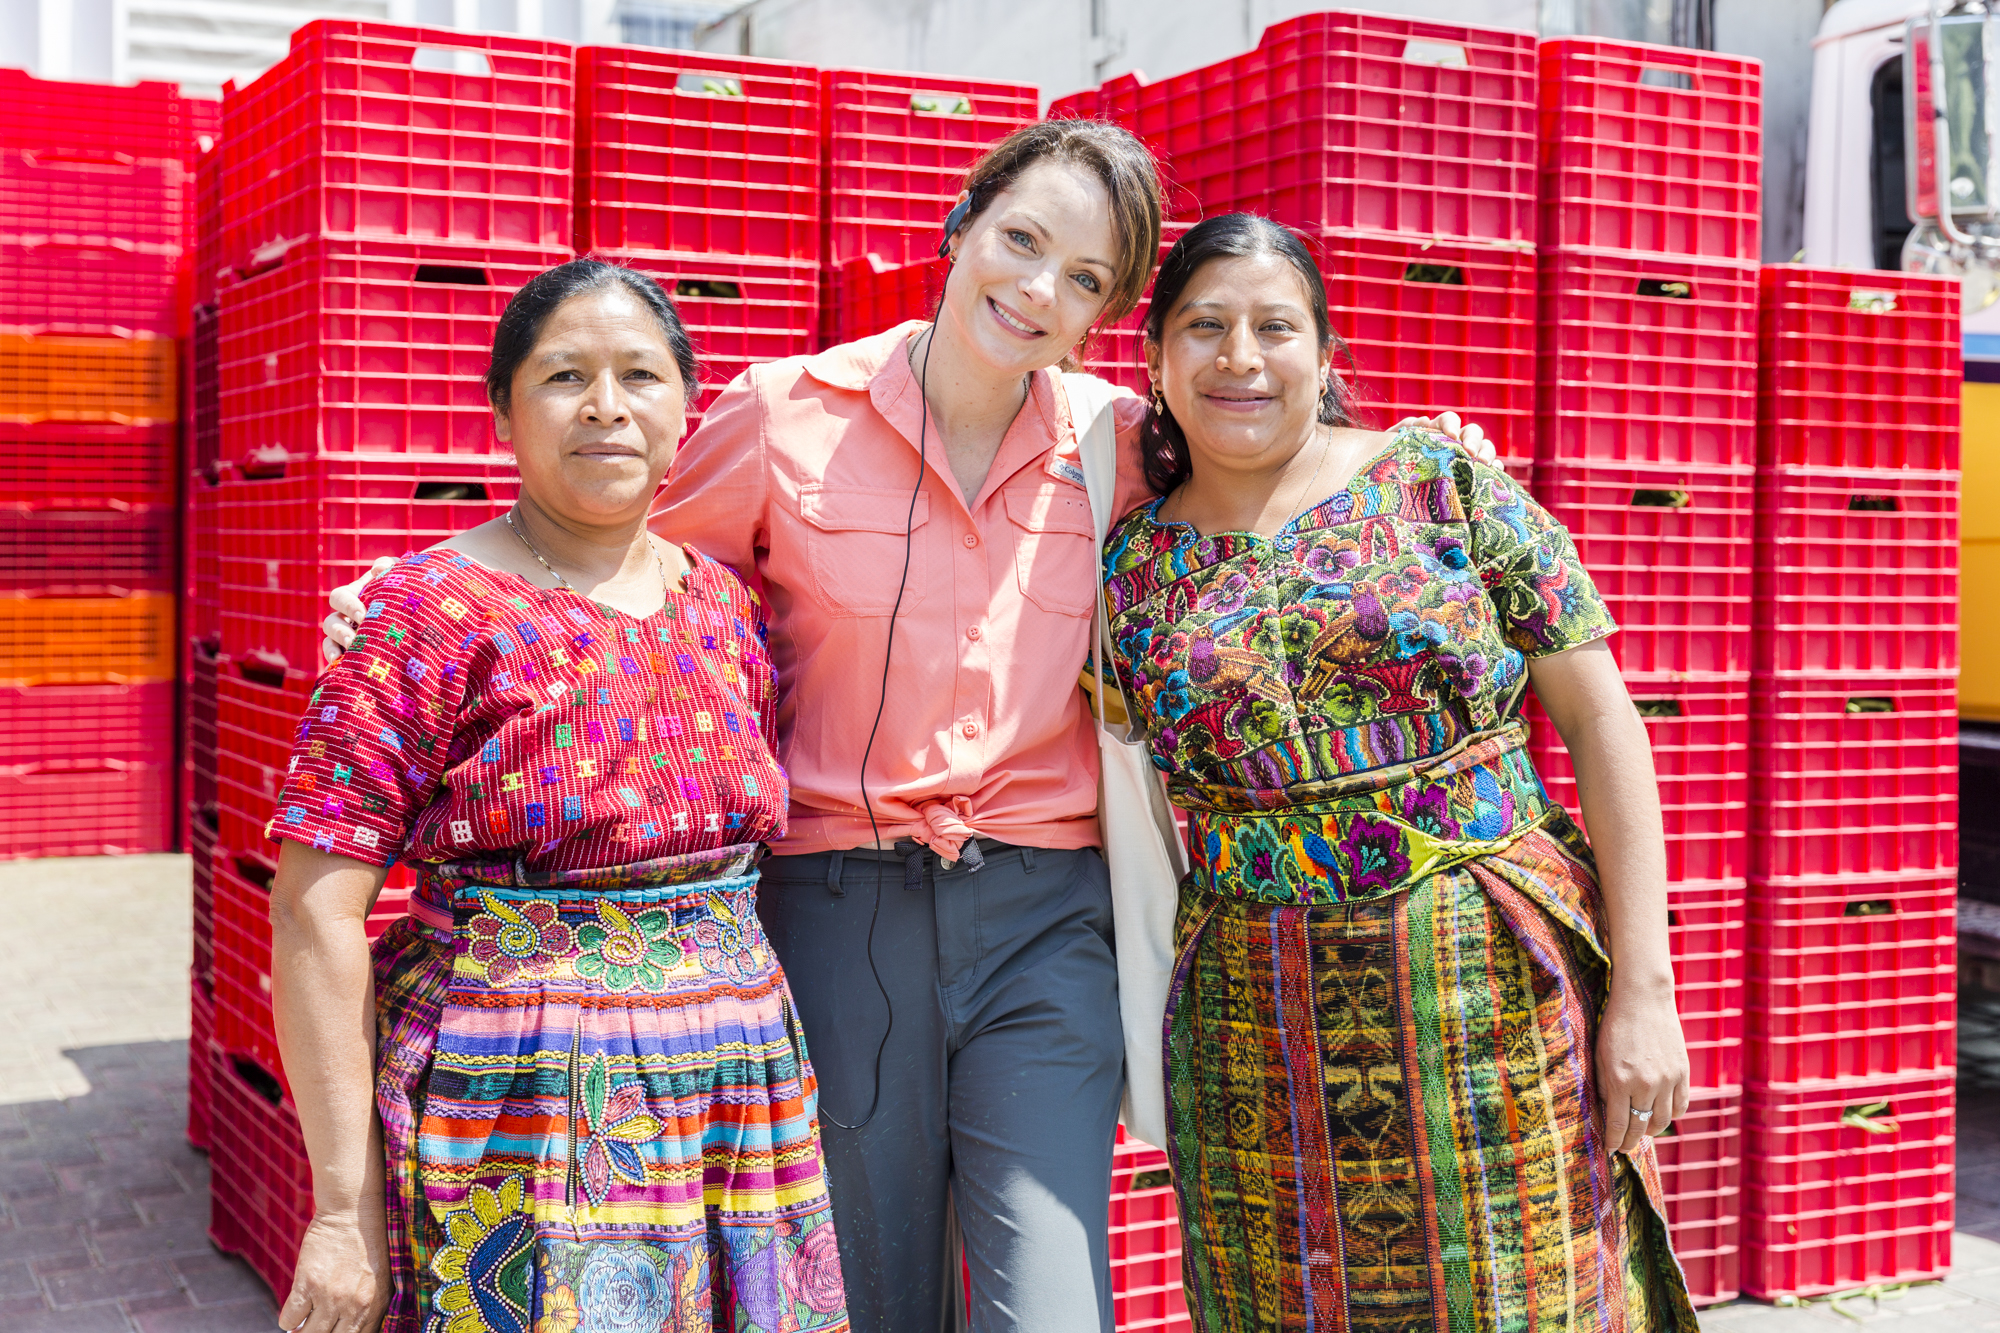 Kimberly Williams-Paisley visits a CARE H&M Empowering Small Rural Women Producers project were she visits the production plant for the first co-op in Guatemala owned and operated by women producers where she discussed the intersection of family violence and economic empowerment with women in the co - op.